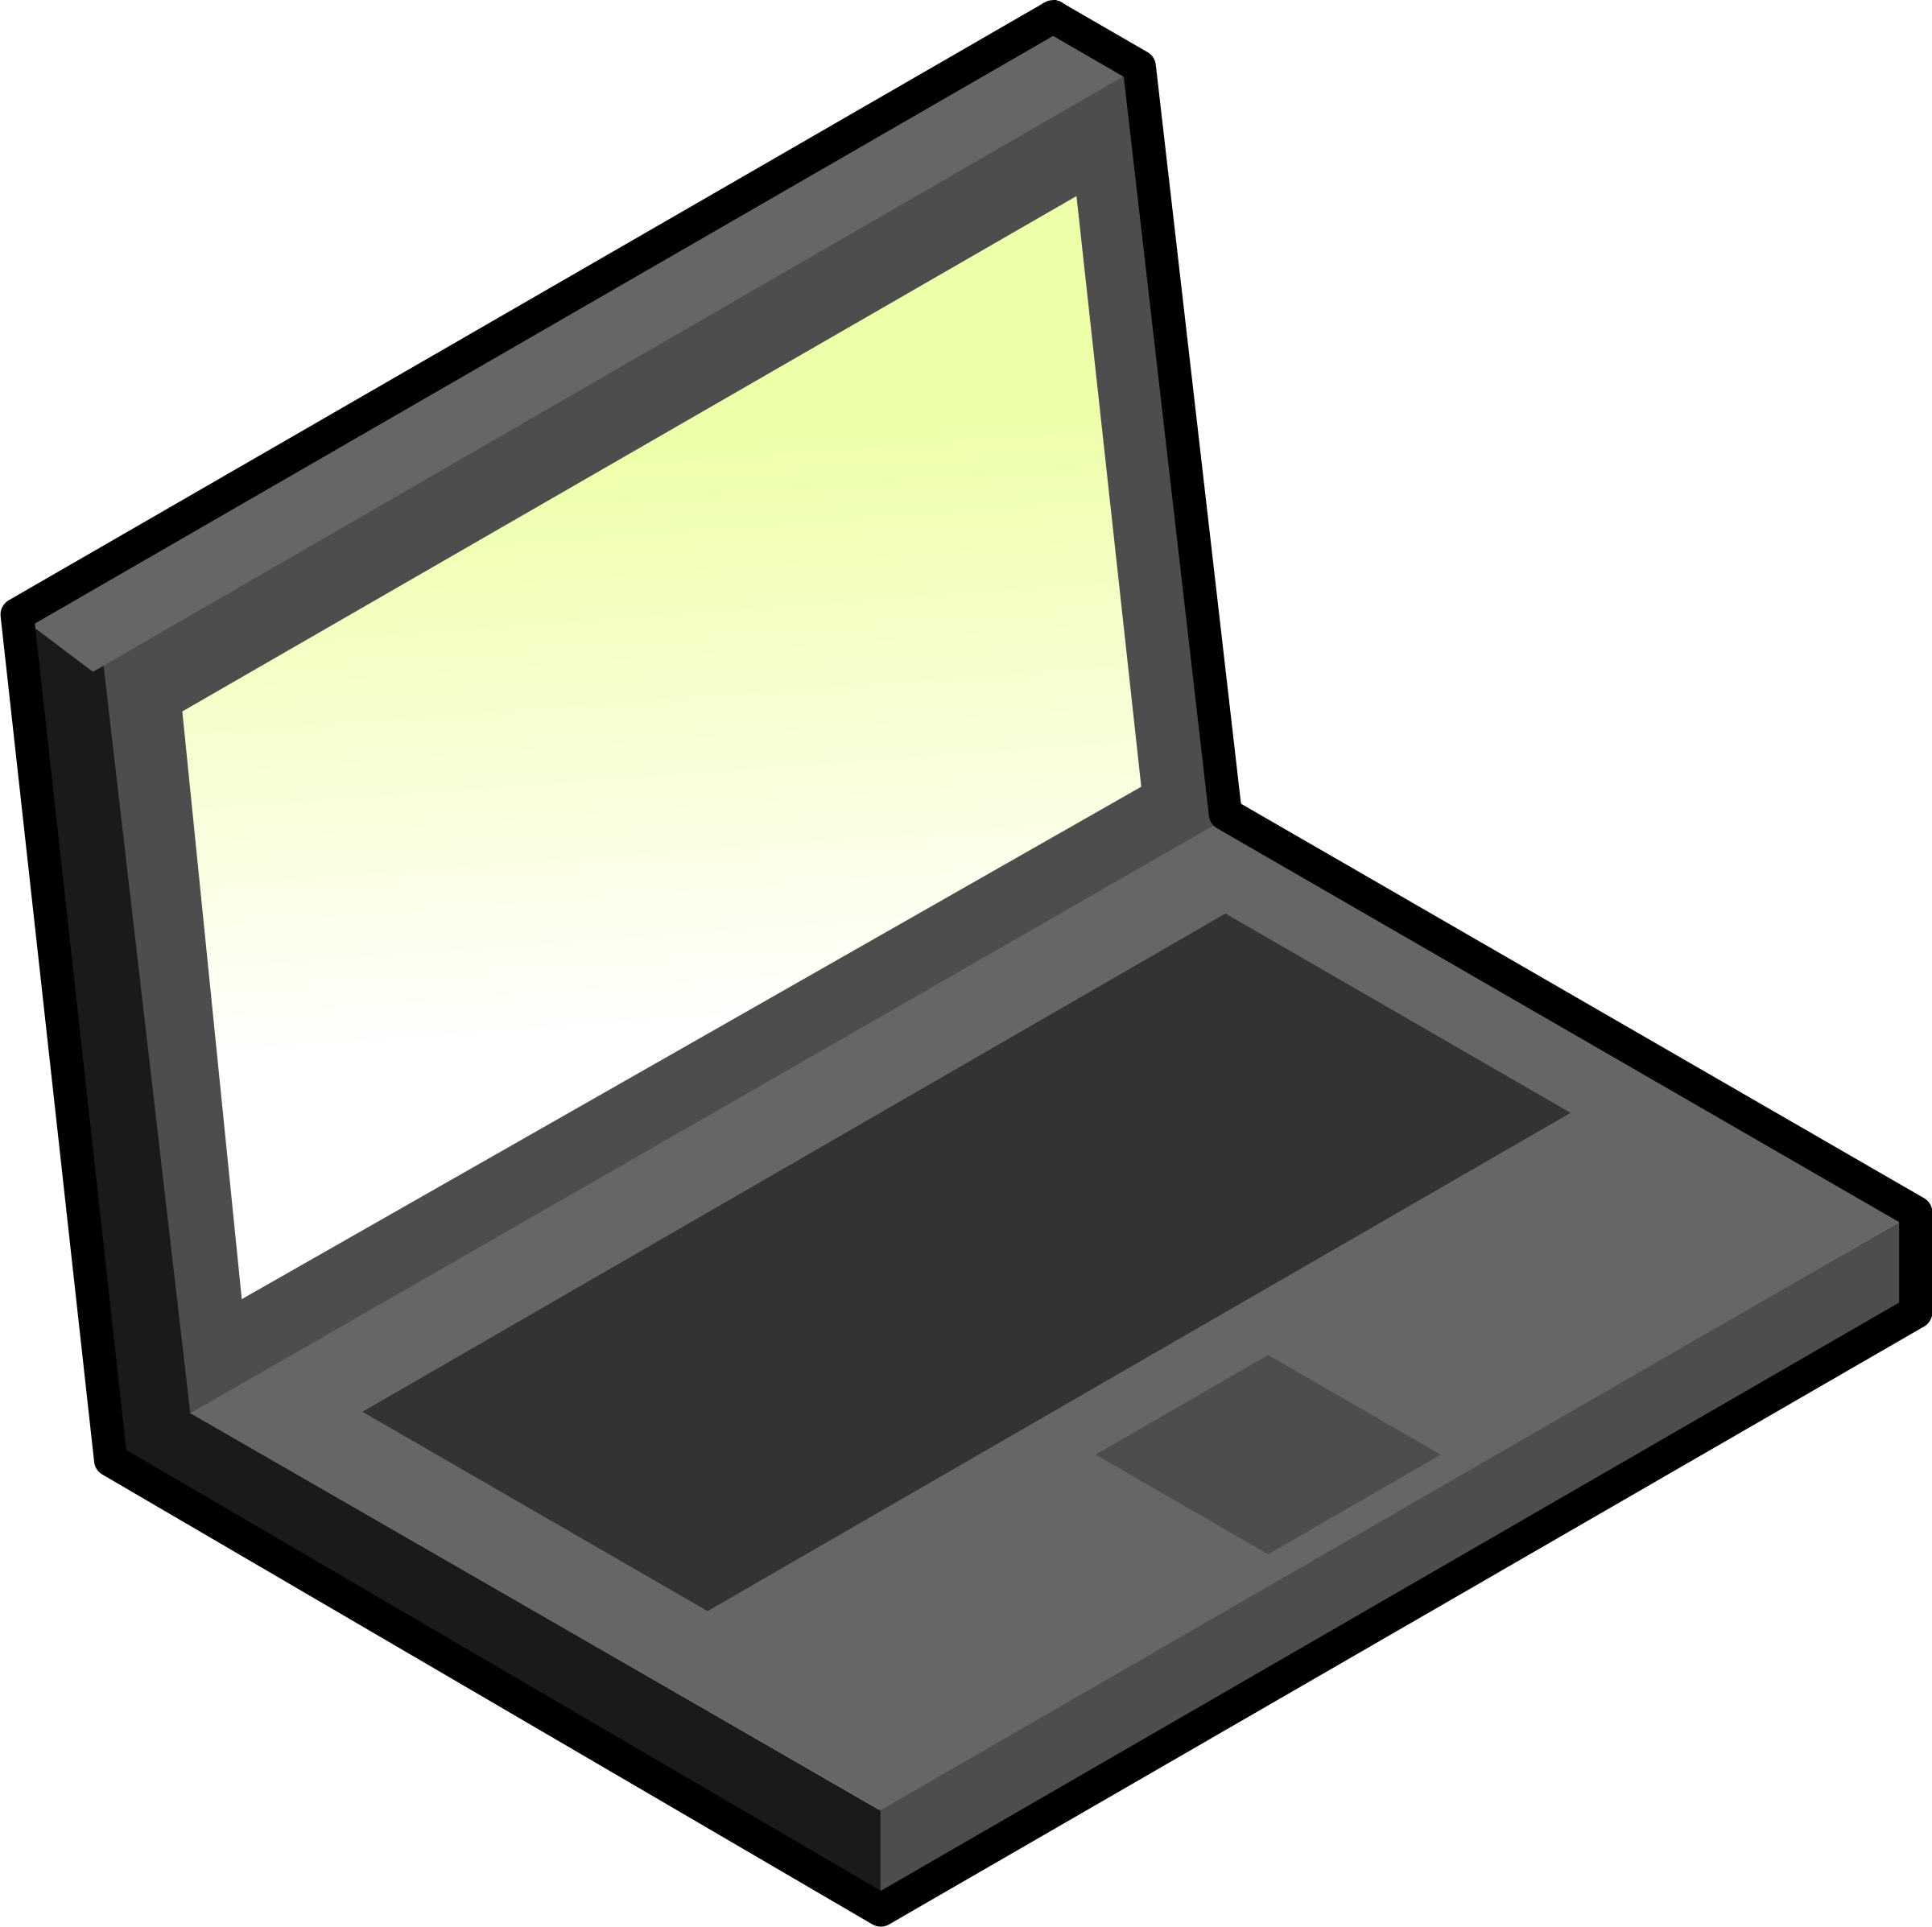 Simple laptop by aoguerrero